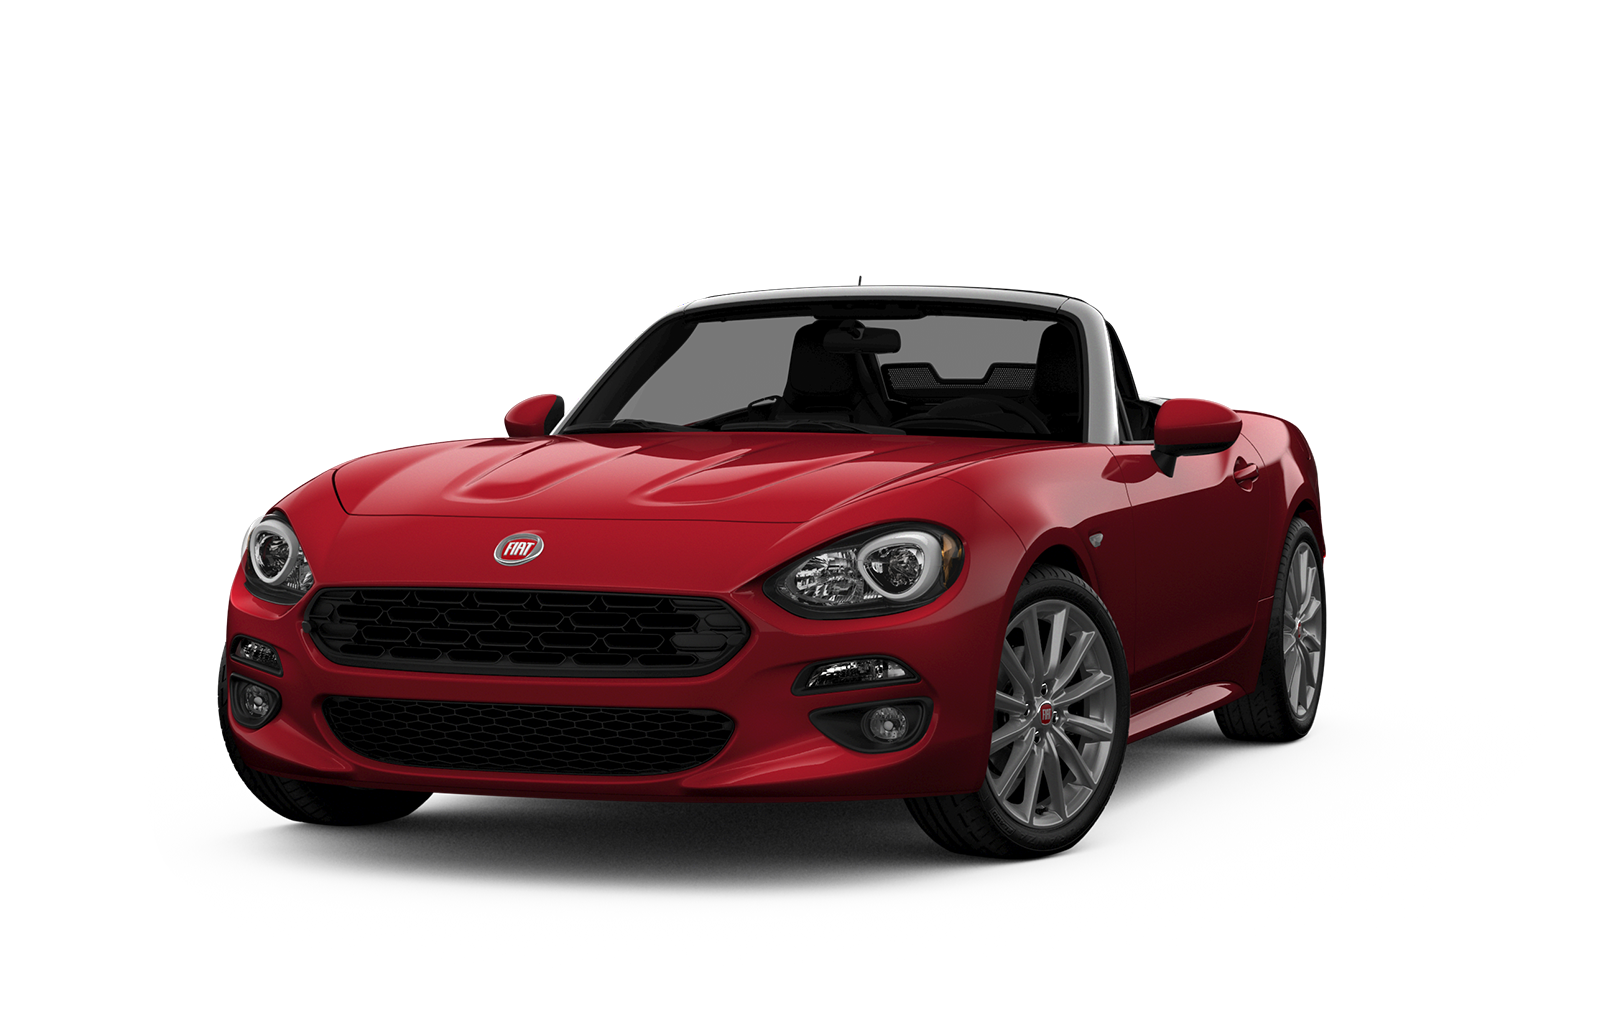 Hyundai 124 Spider 2019 Rouge hypnotique